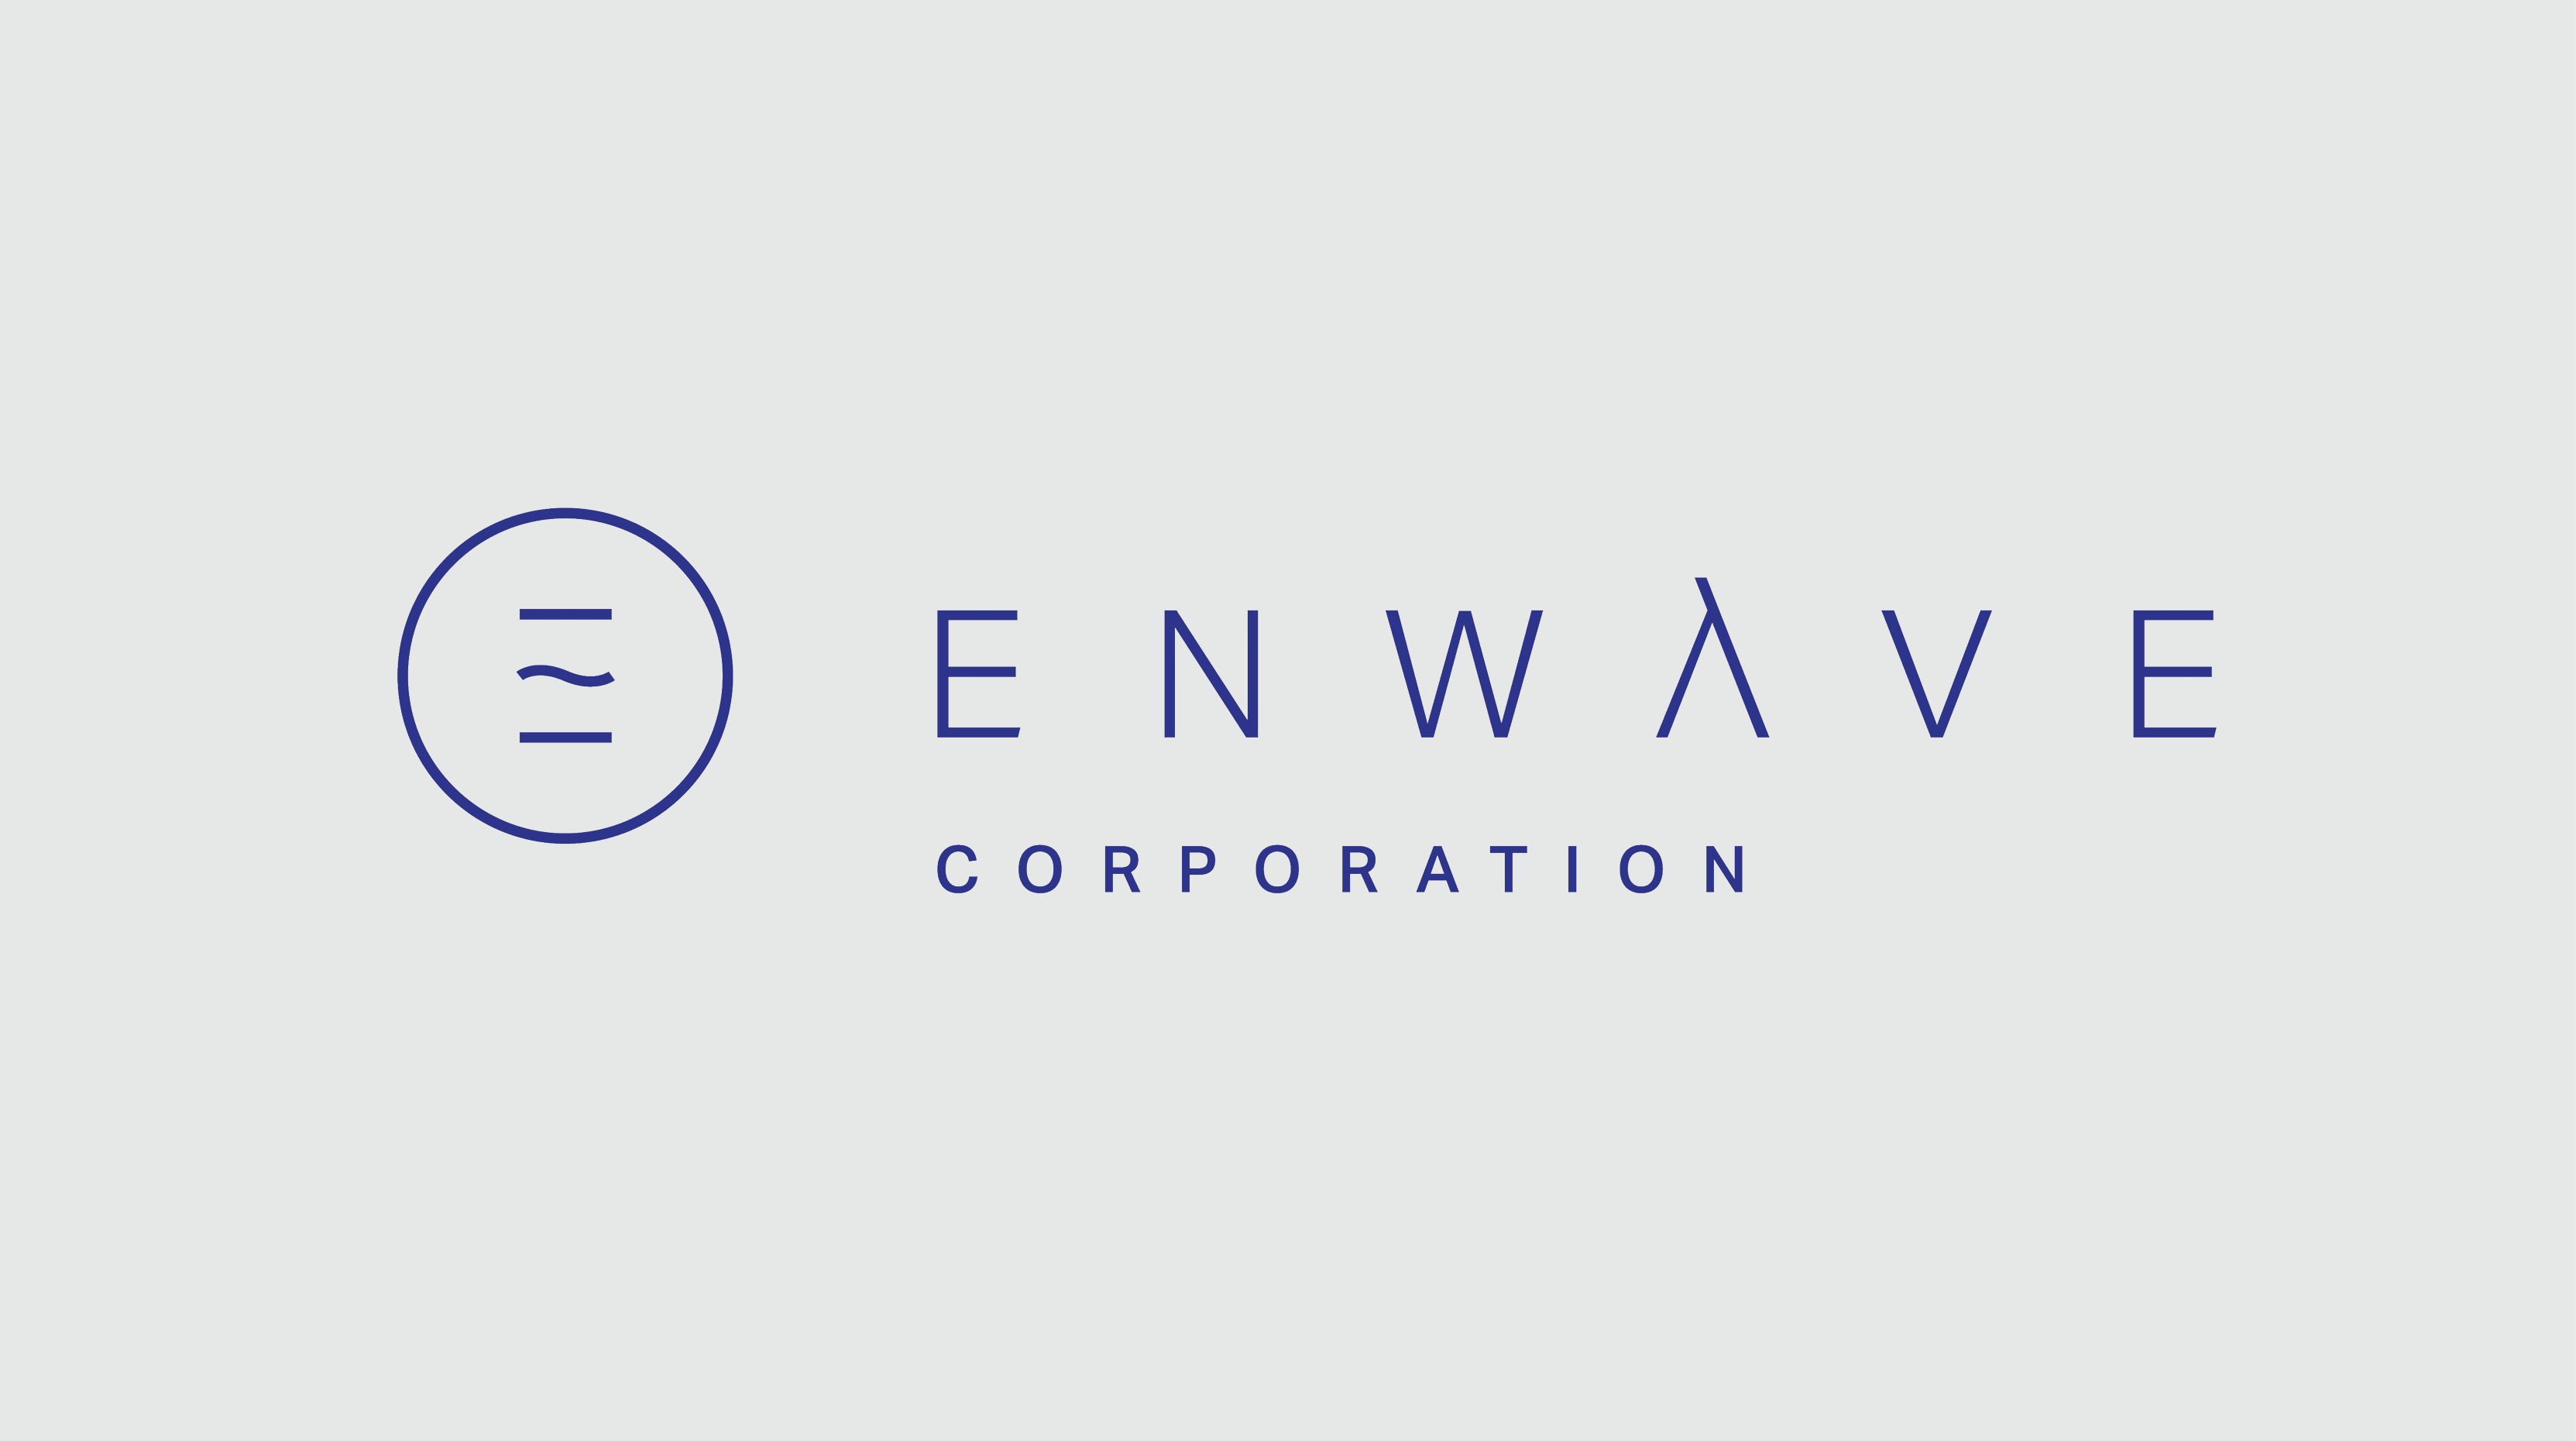 EnWave sells 10 kW REV™ Machine to Dairy Concepts IRLfor Shelf-Stable Dairy Snack Production